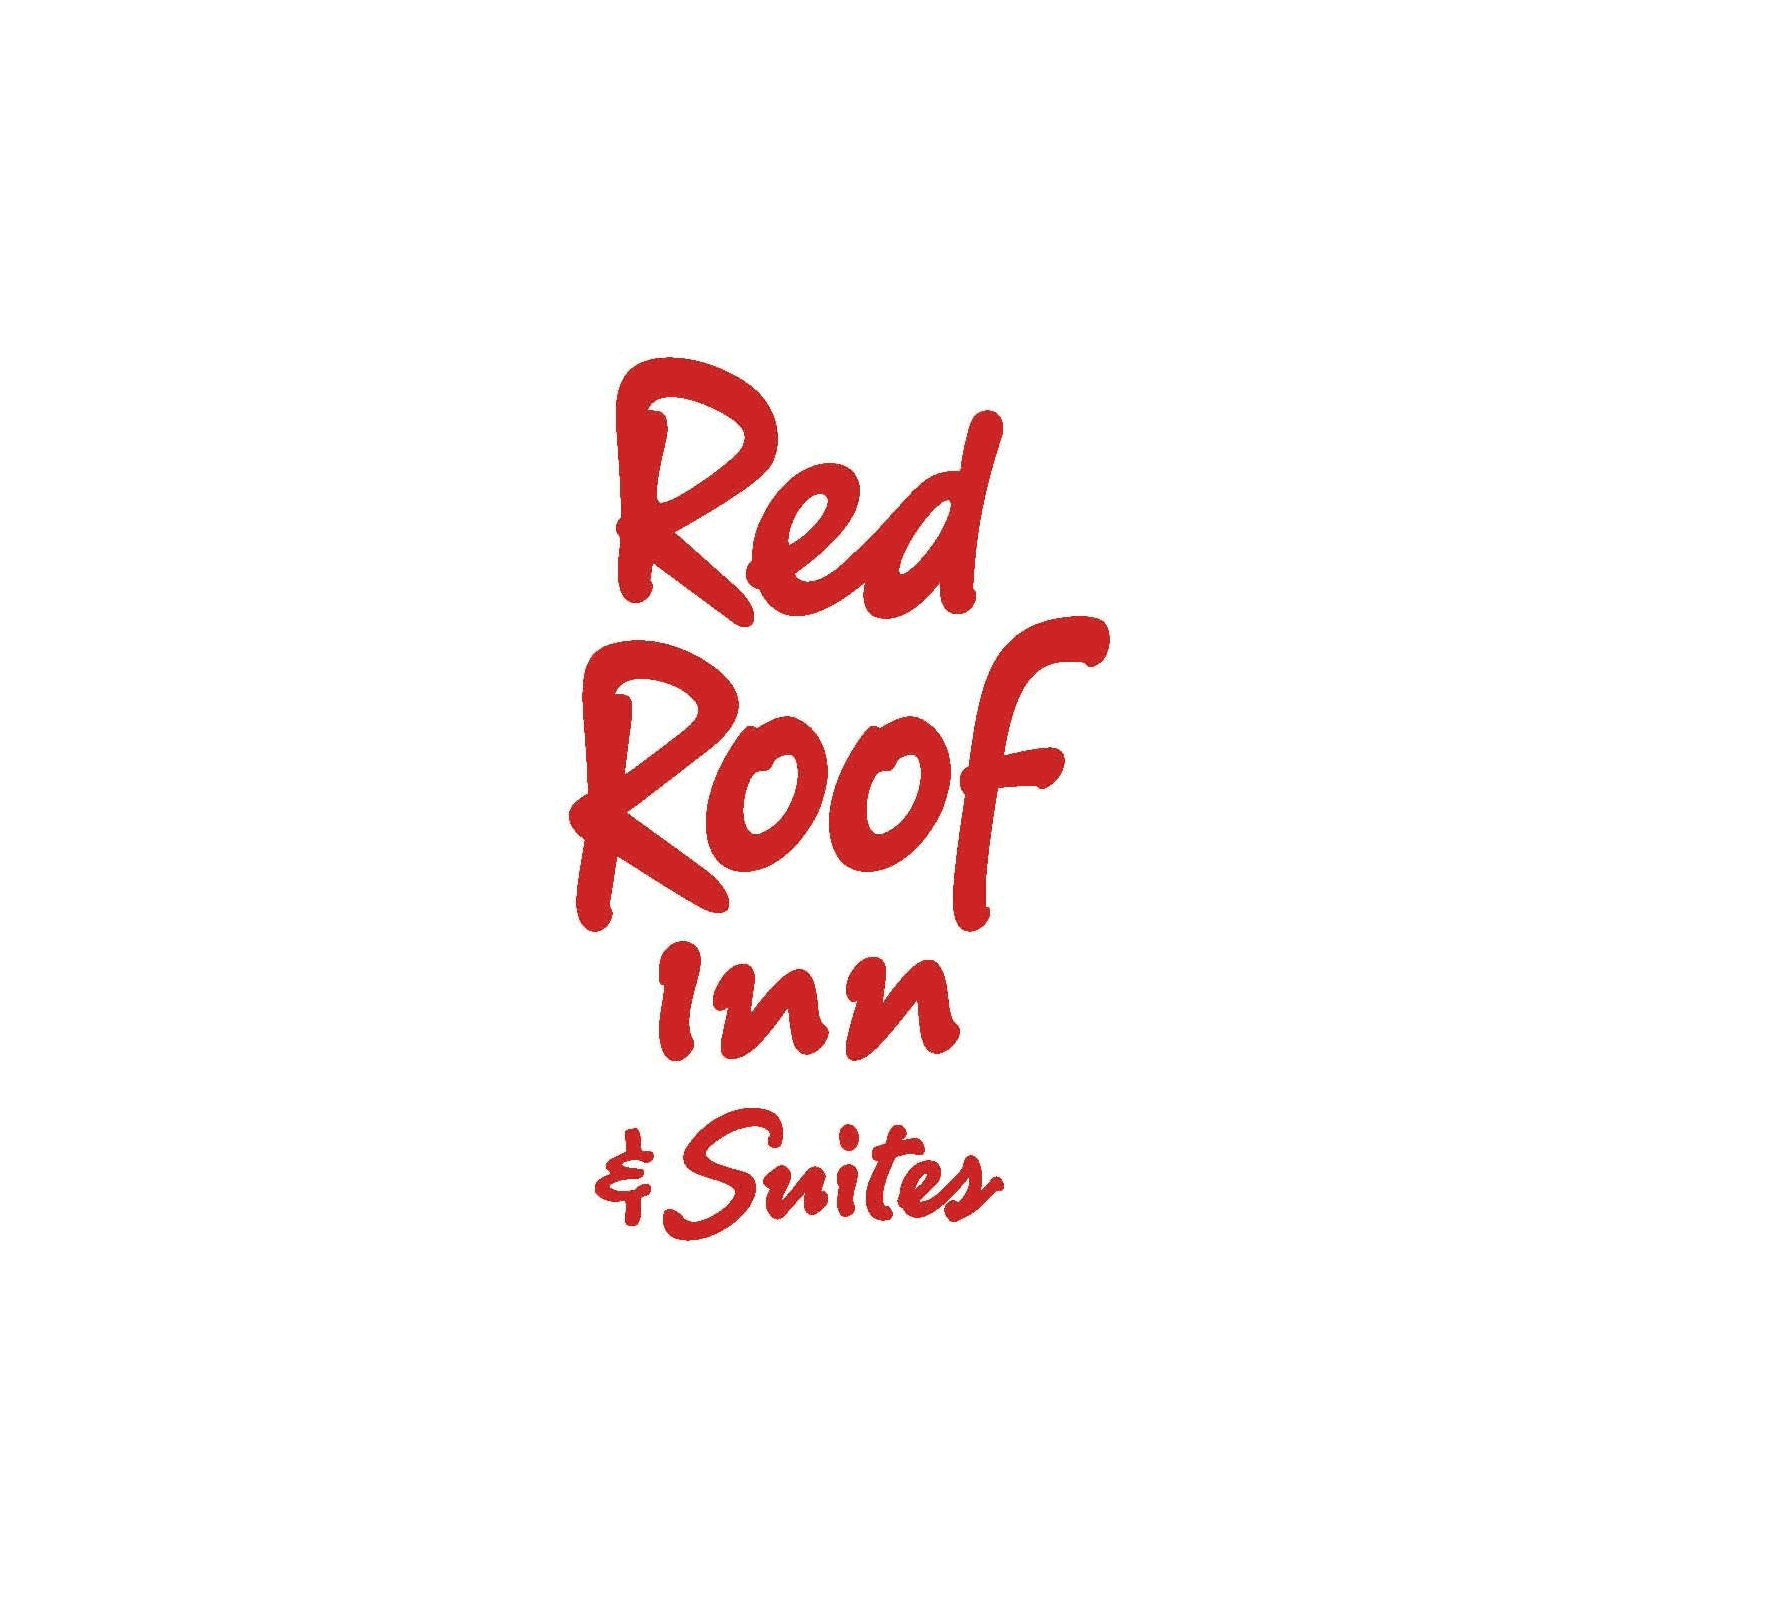 Red Roof Inn Suites Anderson Sc Offers Comfortable Accommodations At An Affordable Price Redroofinn Anderson Sc Travel Red Roof Inn Red Roof Roofing